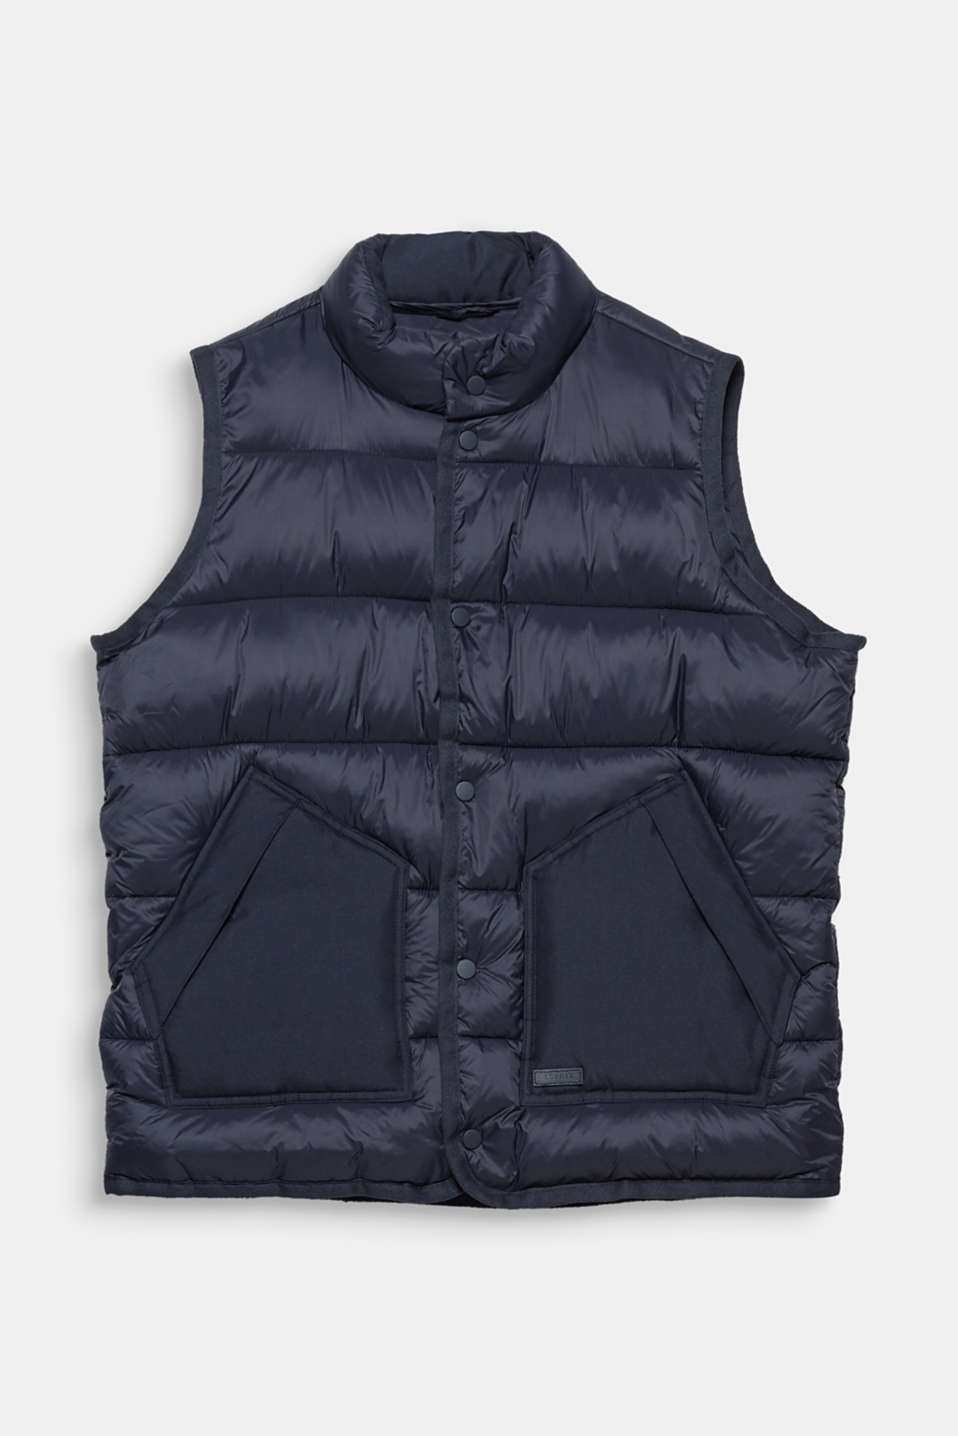 This body warmer with warm padding, a stand-up collar and patch slit pockets is your style partner for between seasons.